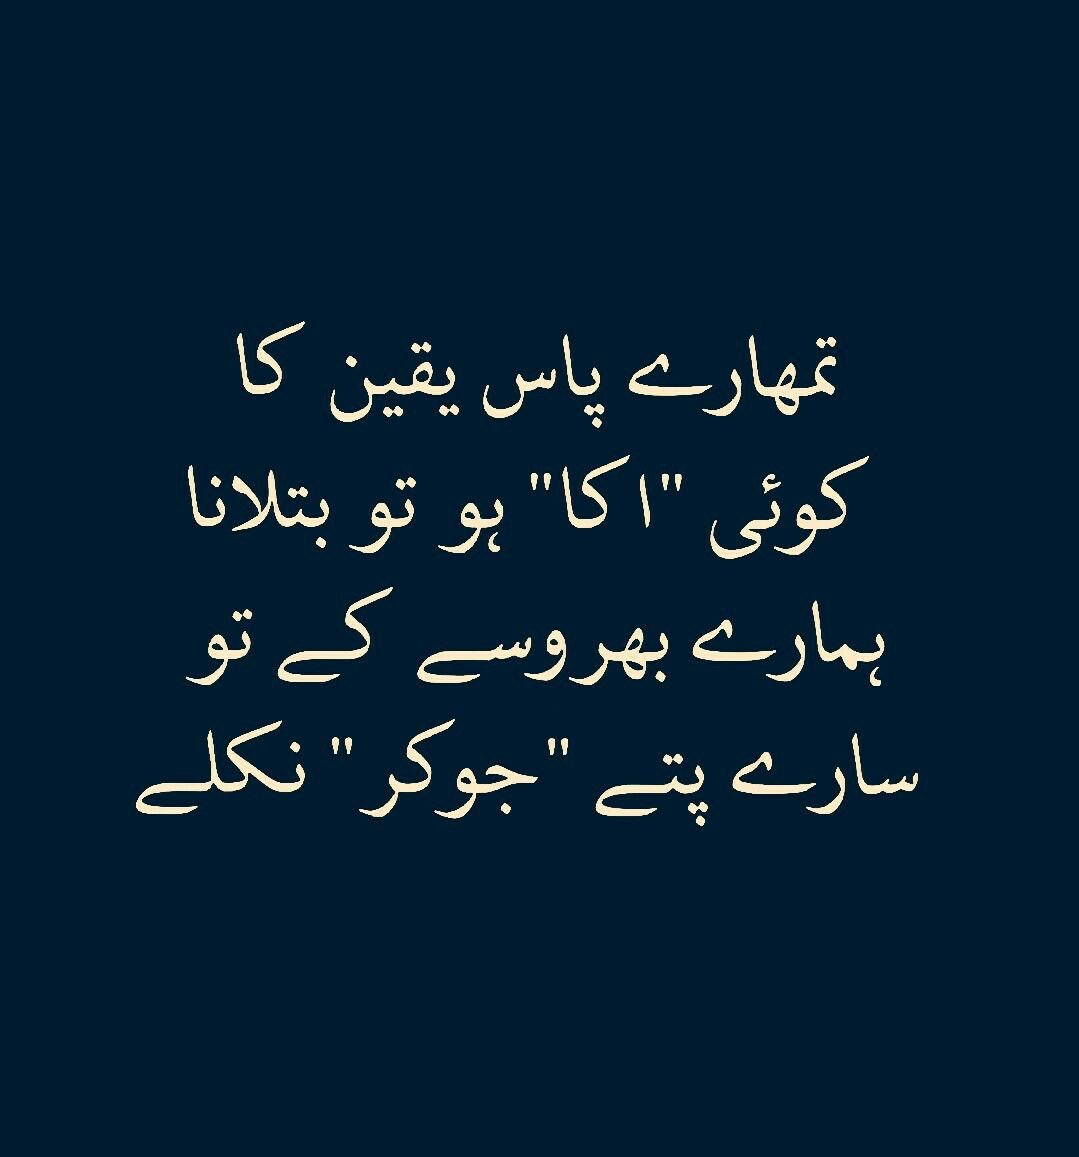 Hamare Bharose K To Sare Patte Joker Nikle Good Thoughts Urdu Quotes Quotes